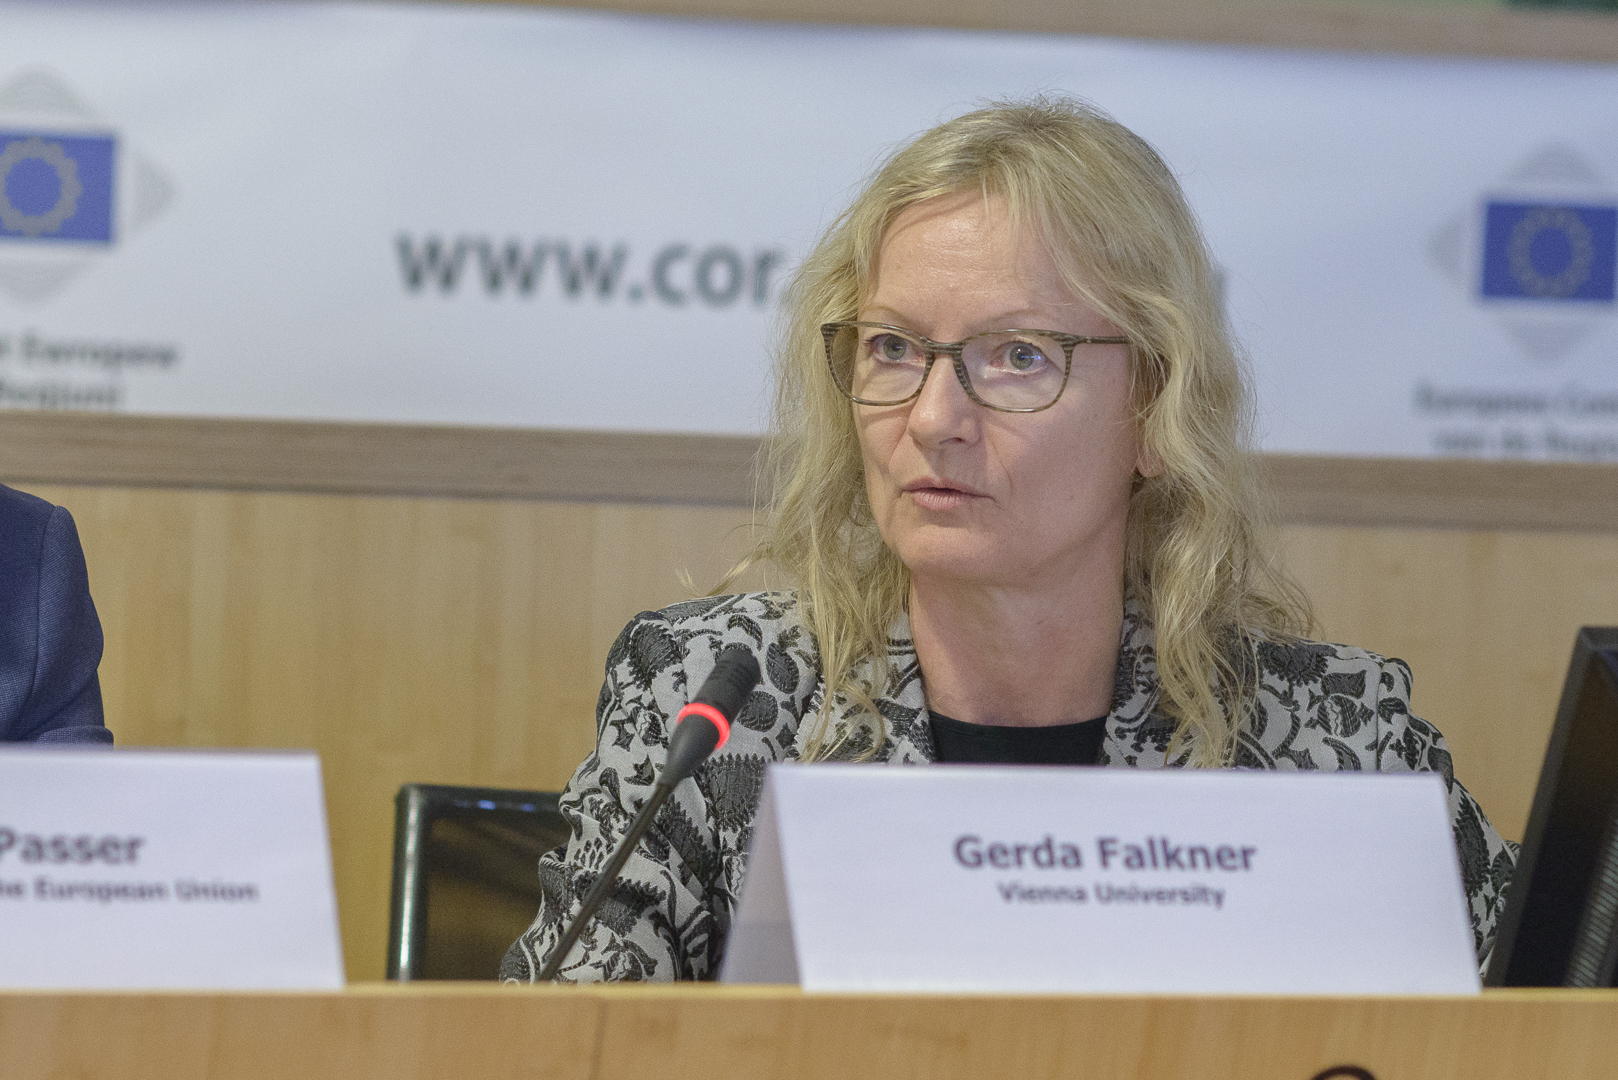 PUTTING EU LAW INTO PRACTICE CONFERENCE - Gerda Falkner, Professor of Political Science & Director, Institute for European Integration Research, Vienna University